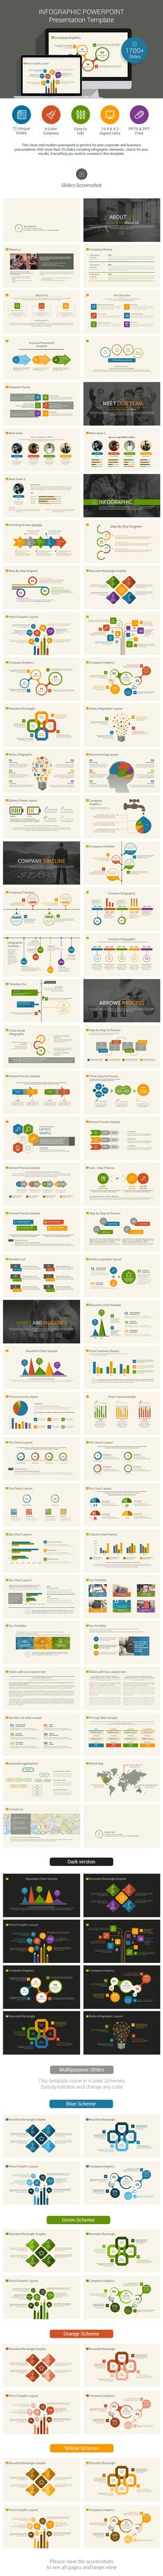 Infographic Powerpoint Template #powerpoint #powerpointtemplate #presentation Download: http://graphicriver.net/item/infographic-powerpoint-template/8824448?ref=ksioks